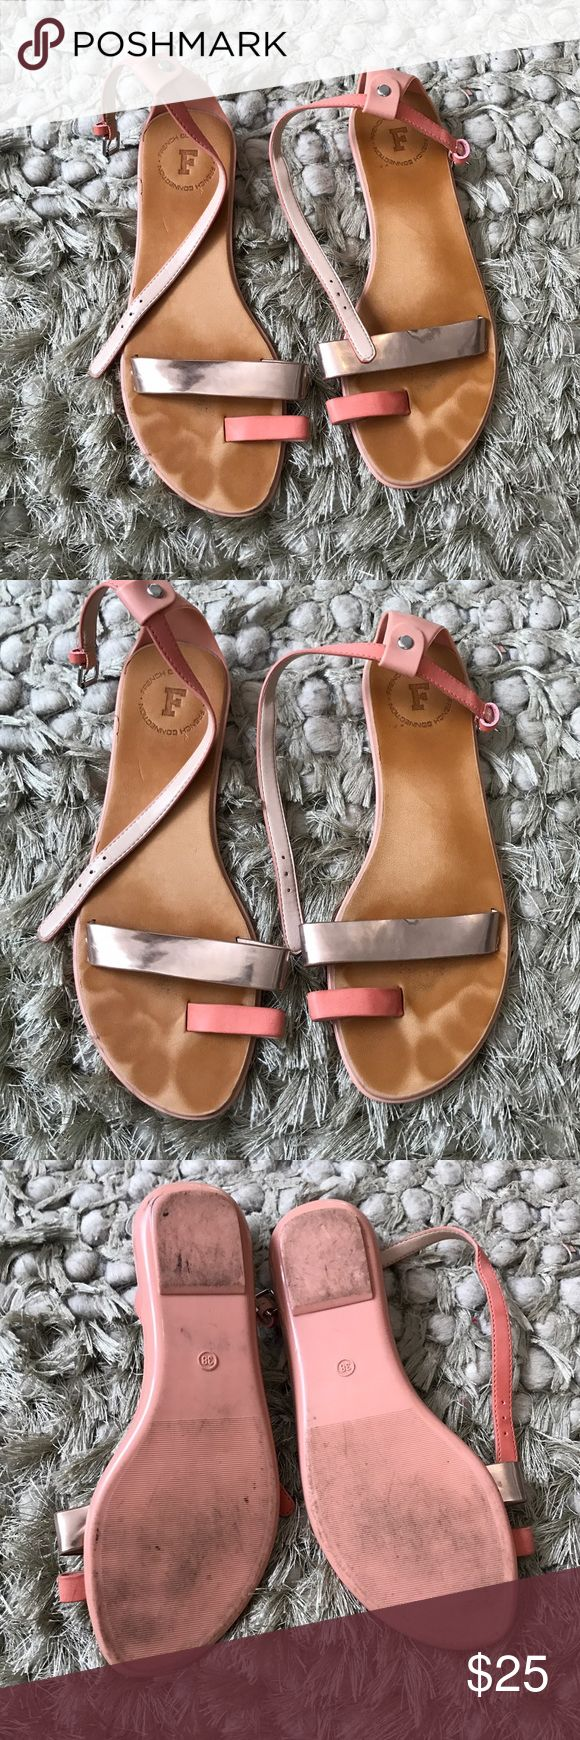 French connection pink sandals 38 In used condition, rubber soled sandals very comfortable. French Connection Shoes Sandals